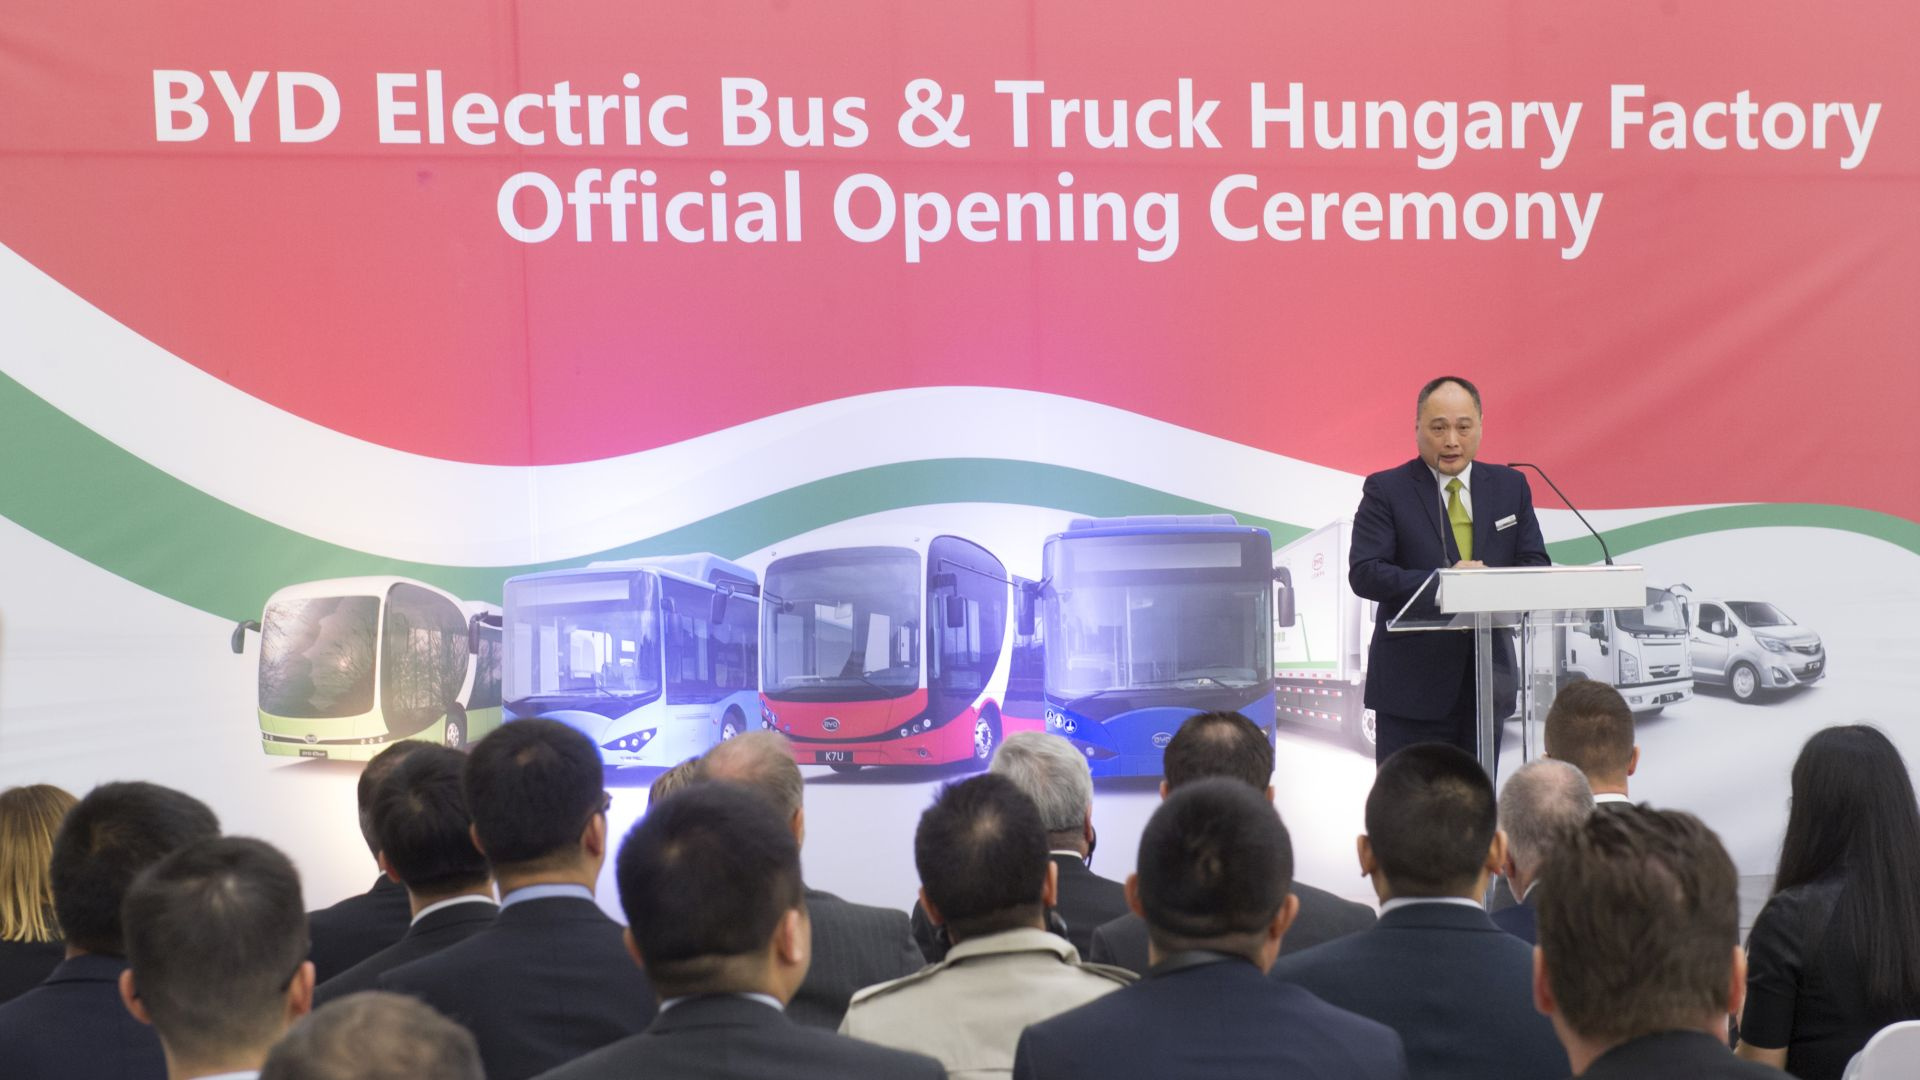 Isbrand Ho, BYD Europe's Managing Director